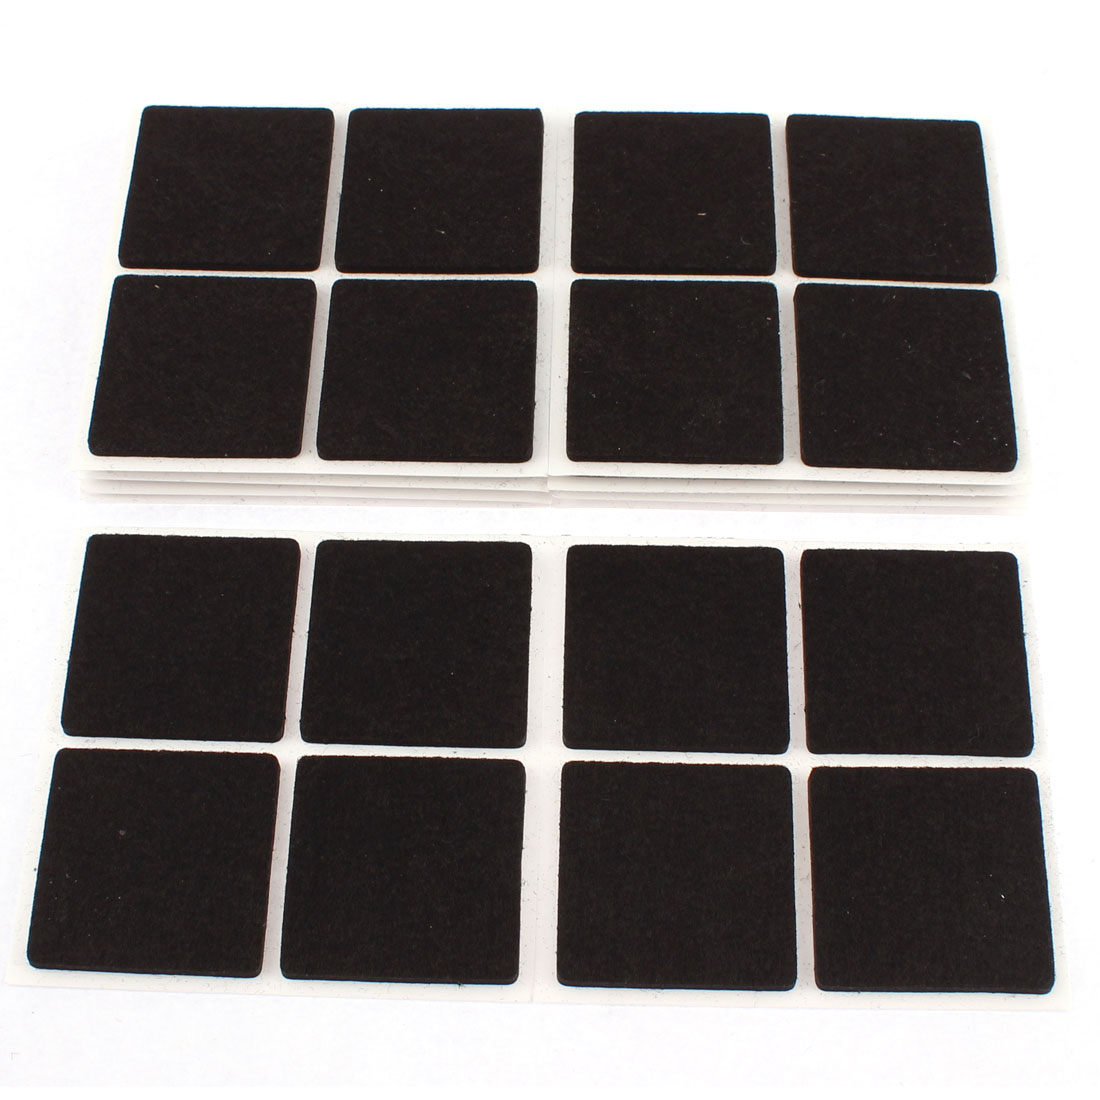 Furniture Feet Non Slip Adhesive Protection Pads Felt Floor Protector 40 Pcs